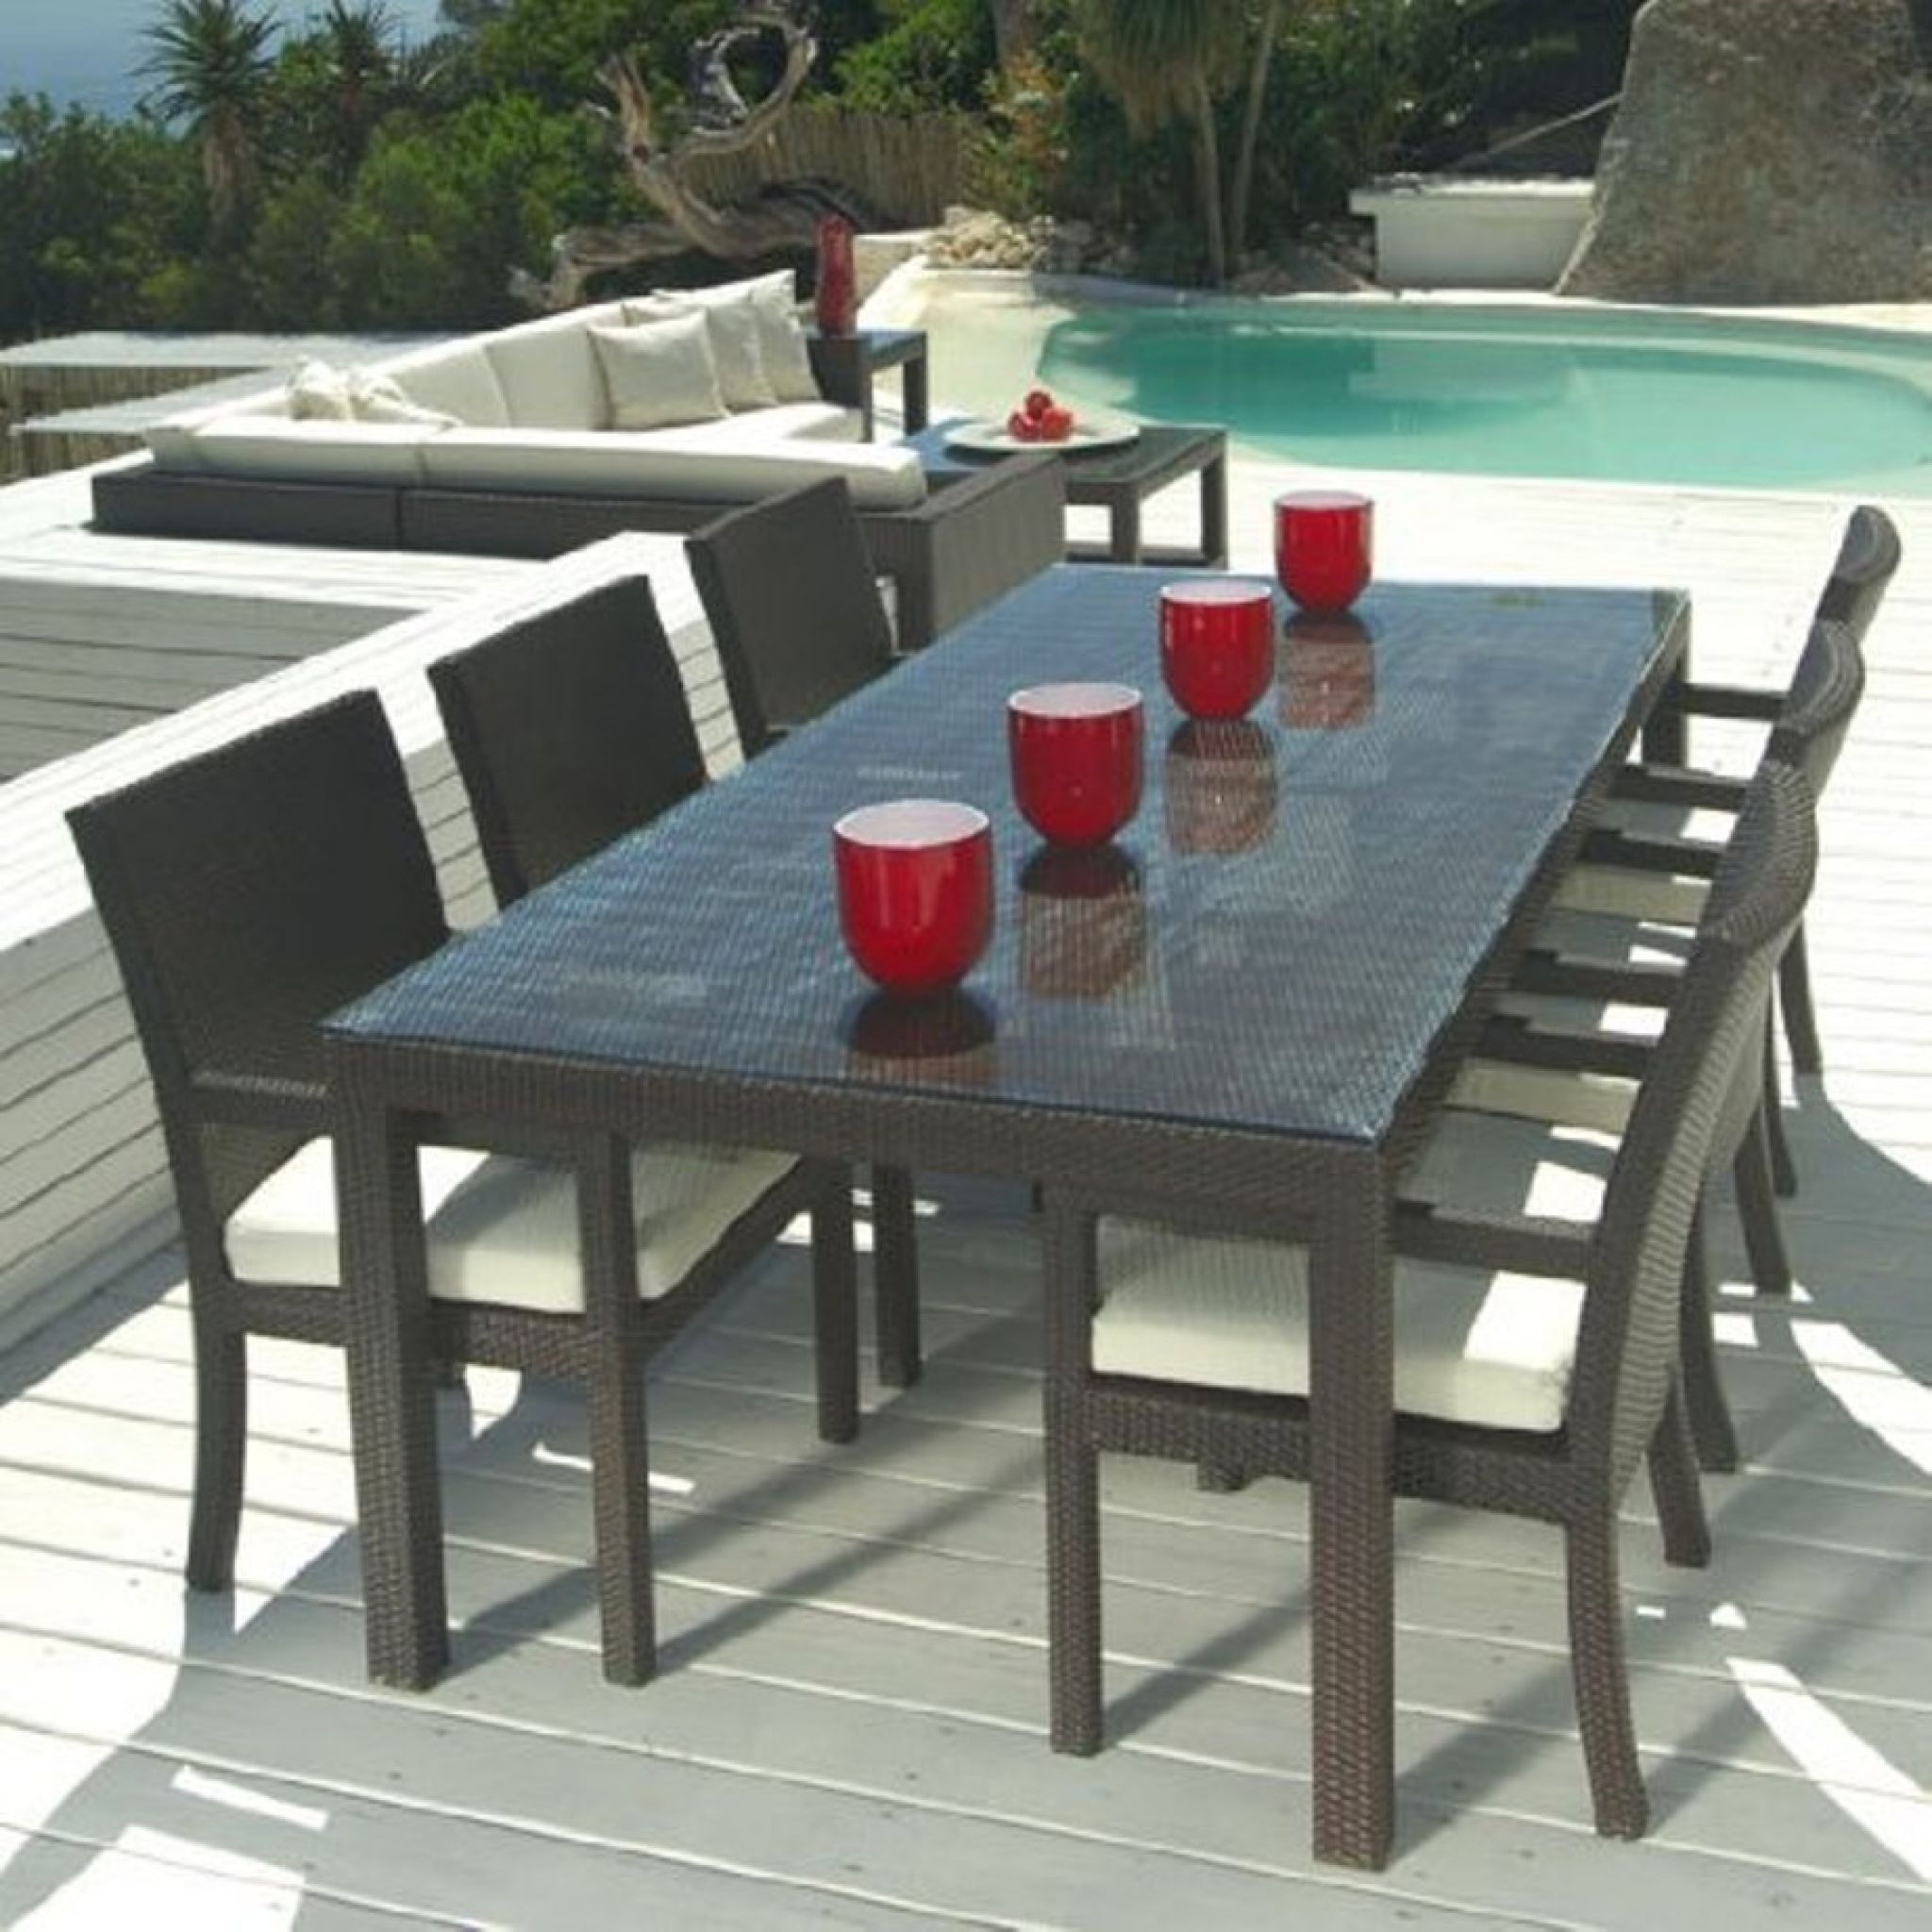 Costco Outdoor Patio Furniture Most Popular Interior Paint Colors Wicker Dining Tables Wicker Patio Furniture Patio Furnishings